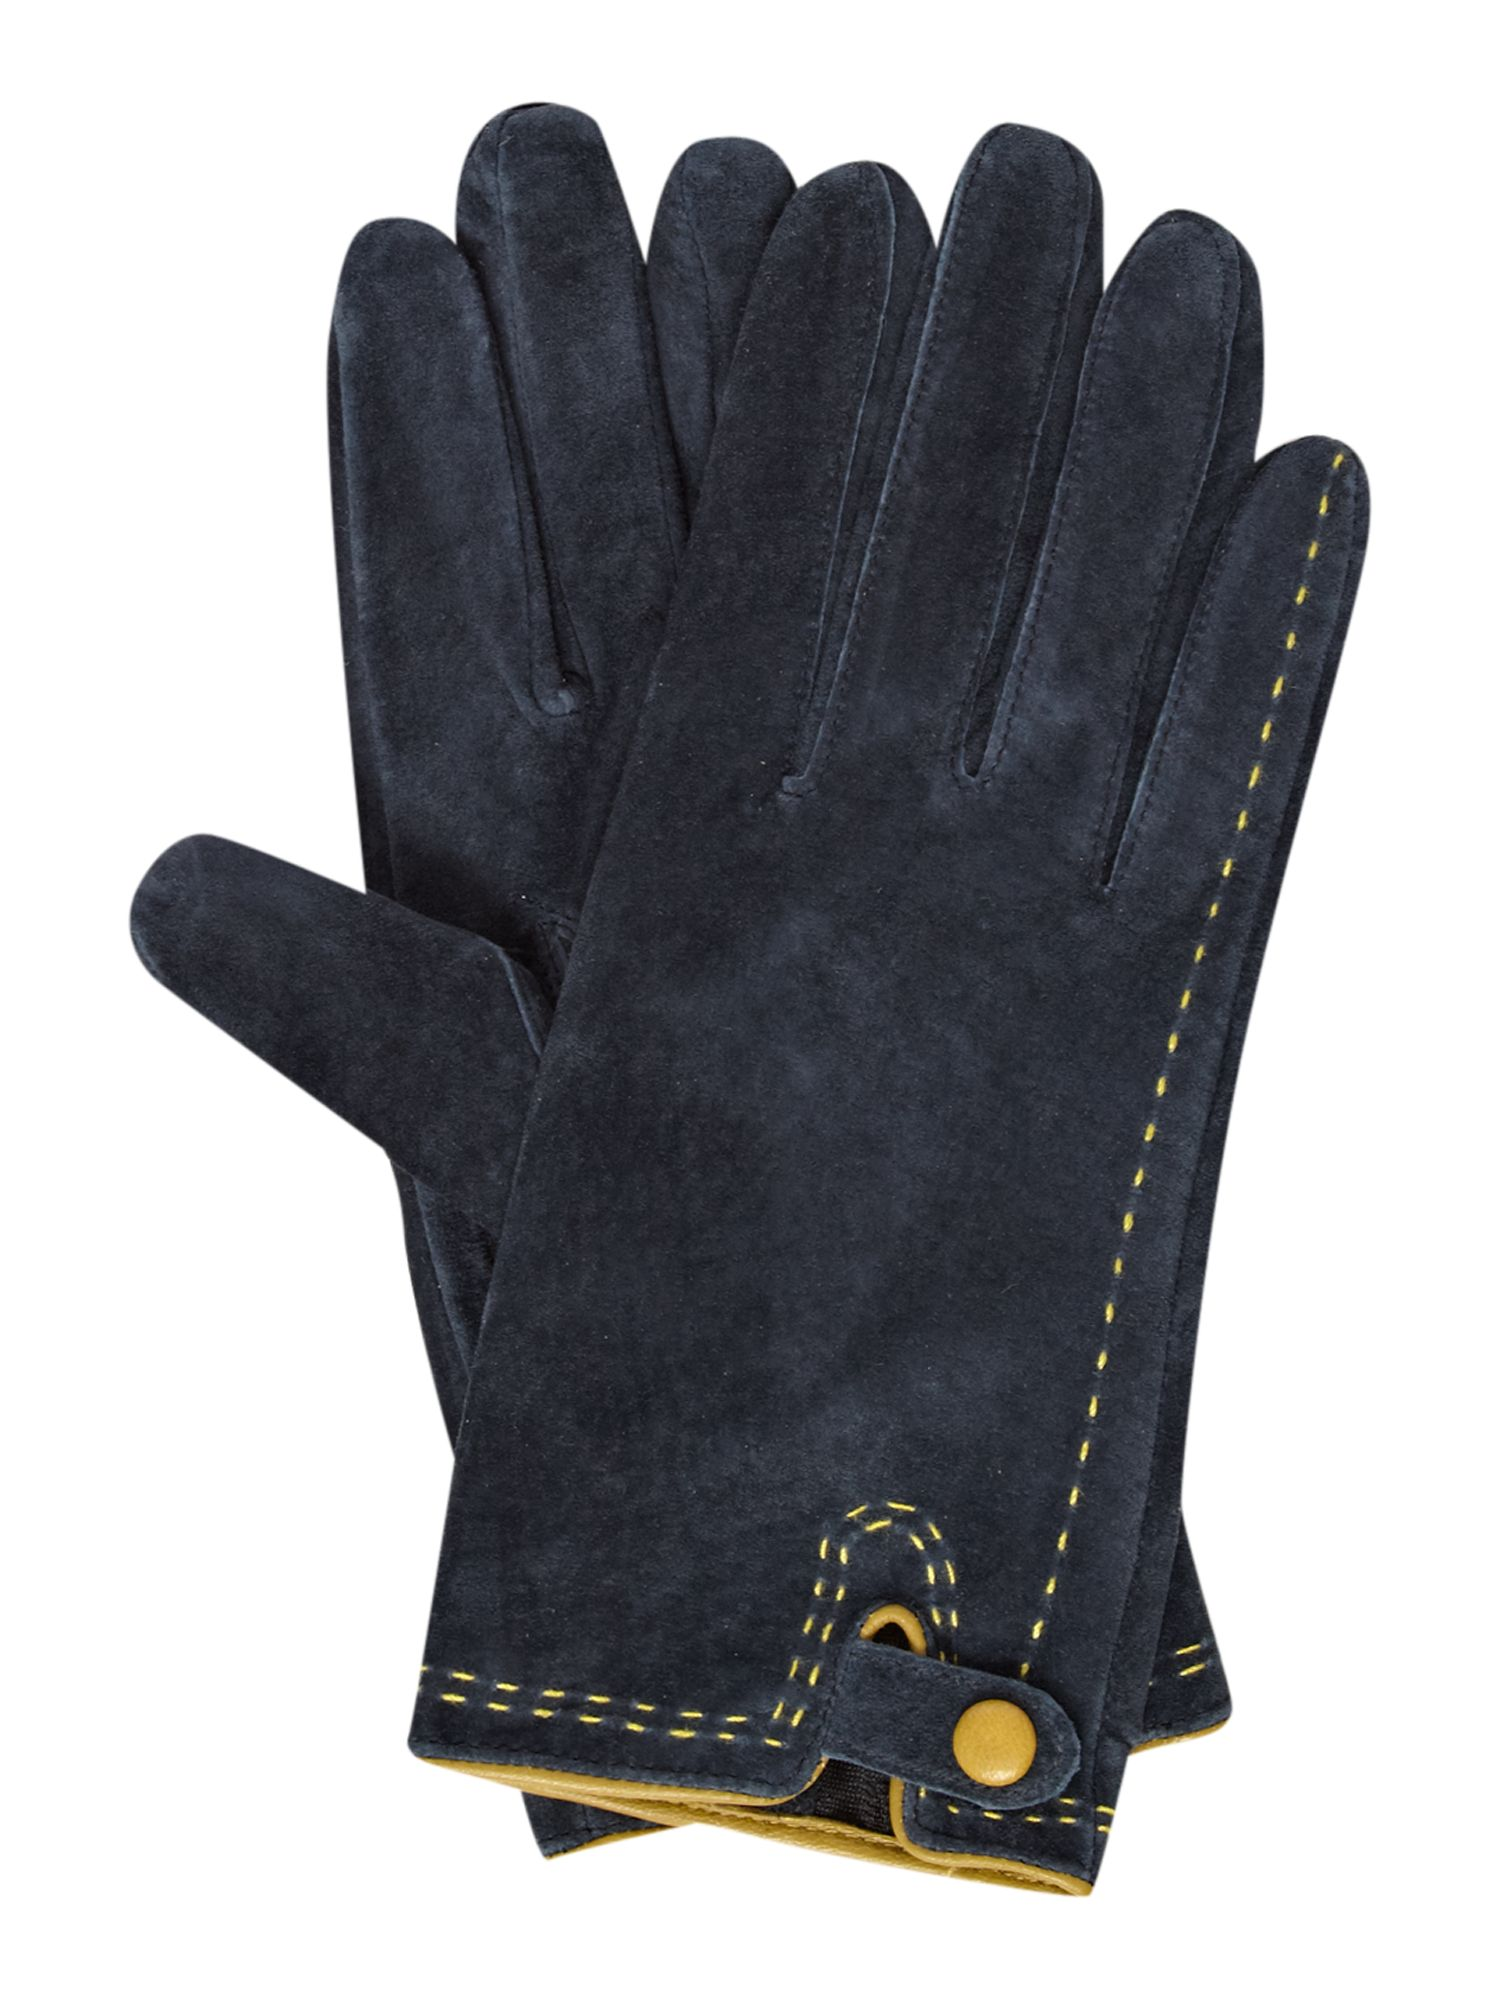 Contrast colour glove with one button detail